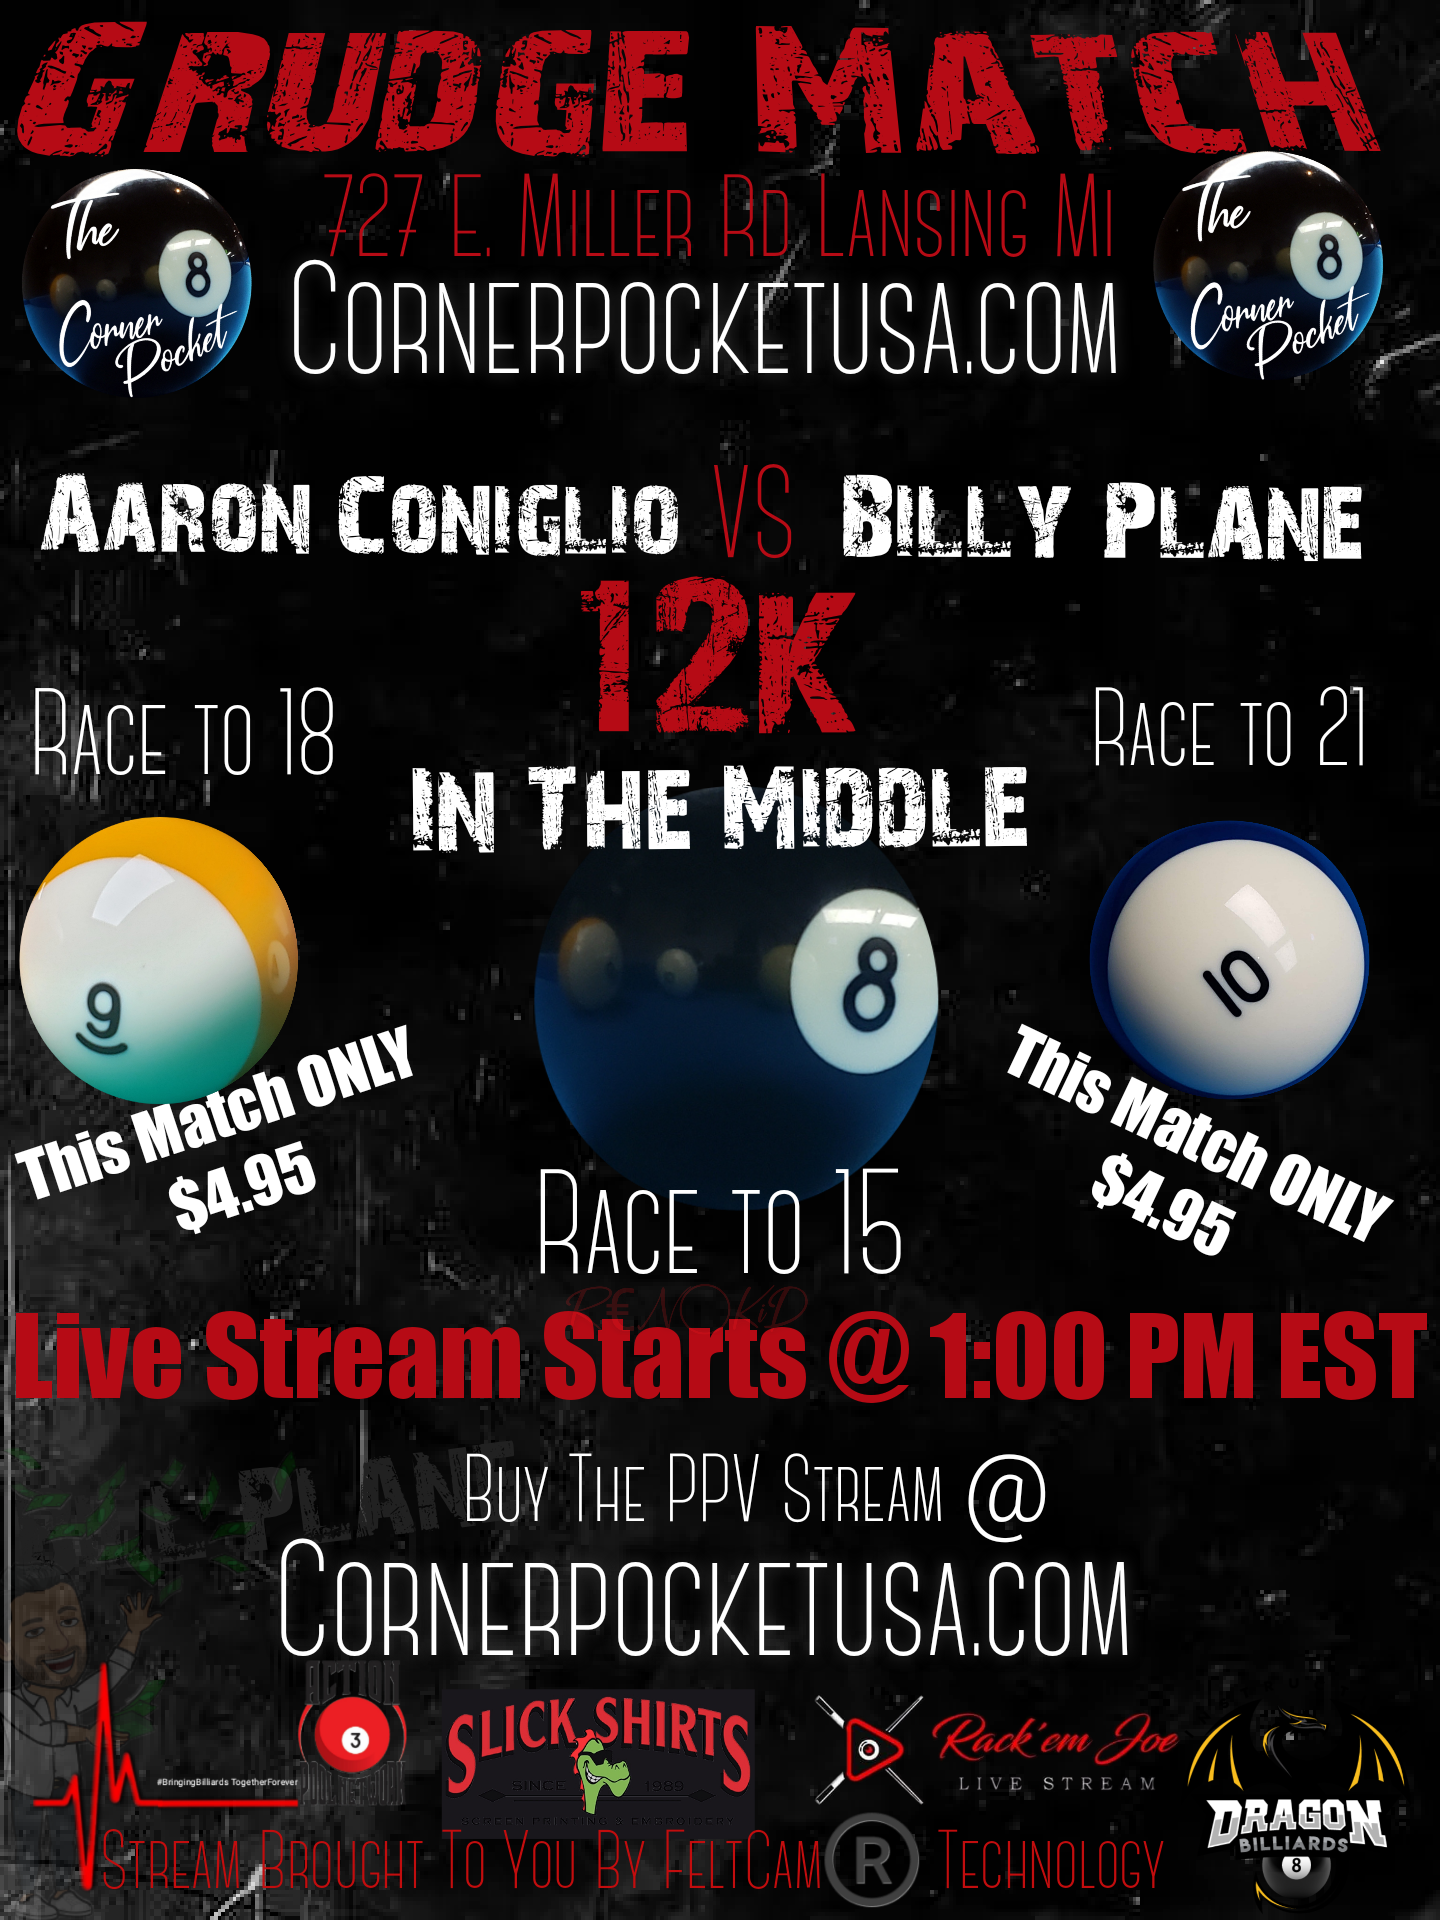 Aaron Conigilo vs Billy Plane $12k in the middle 8, 9, and 10-ball